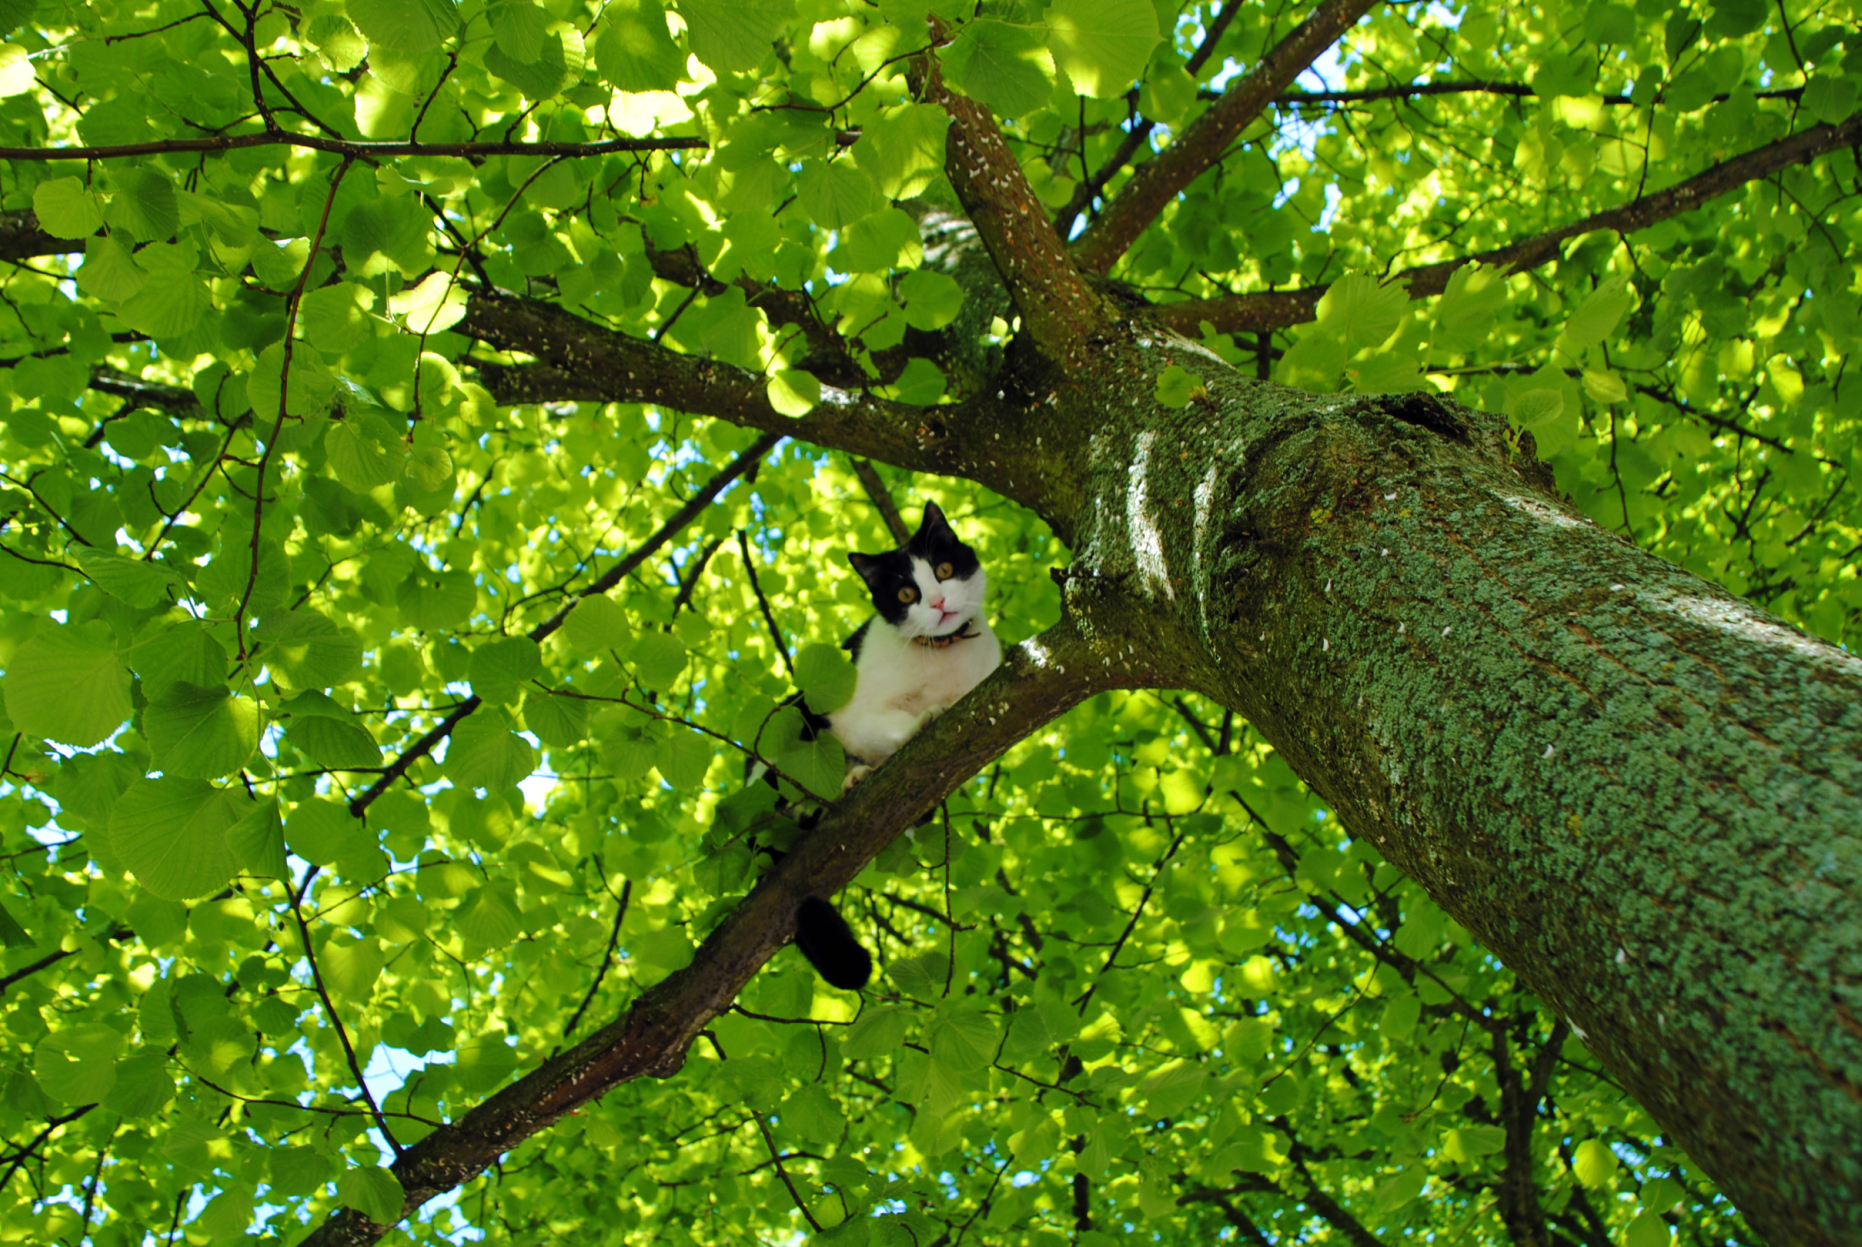 Cat Caught In A Tree | Capturing My World / Paul Abspoel